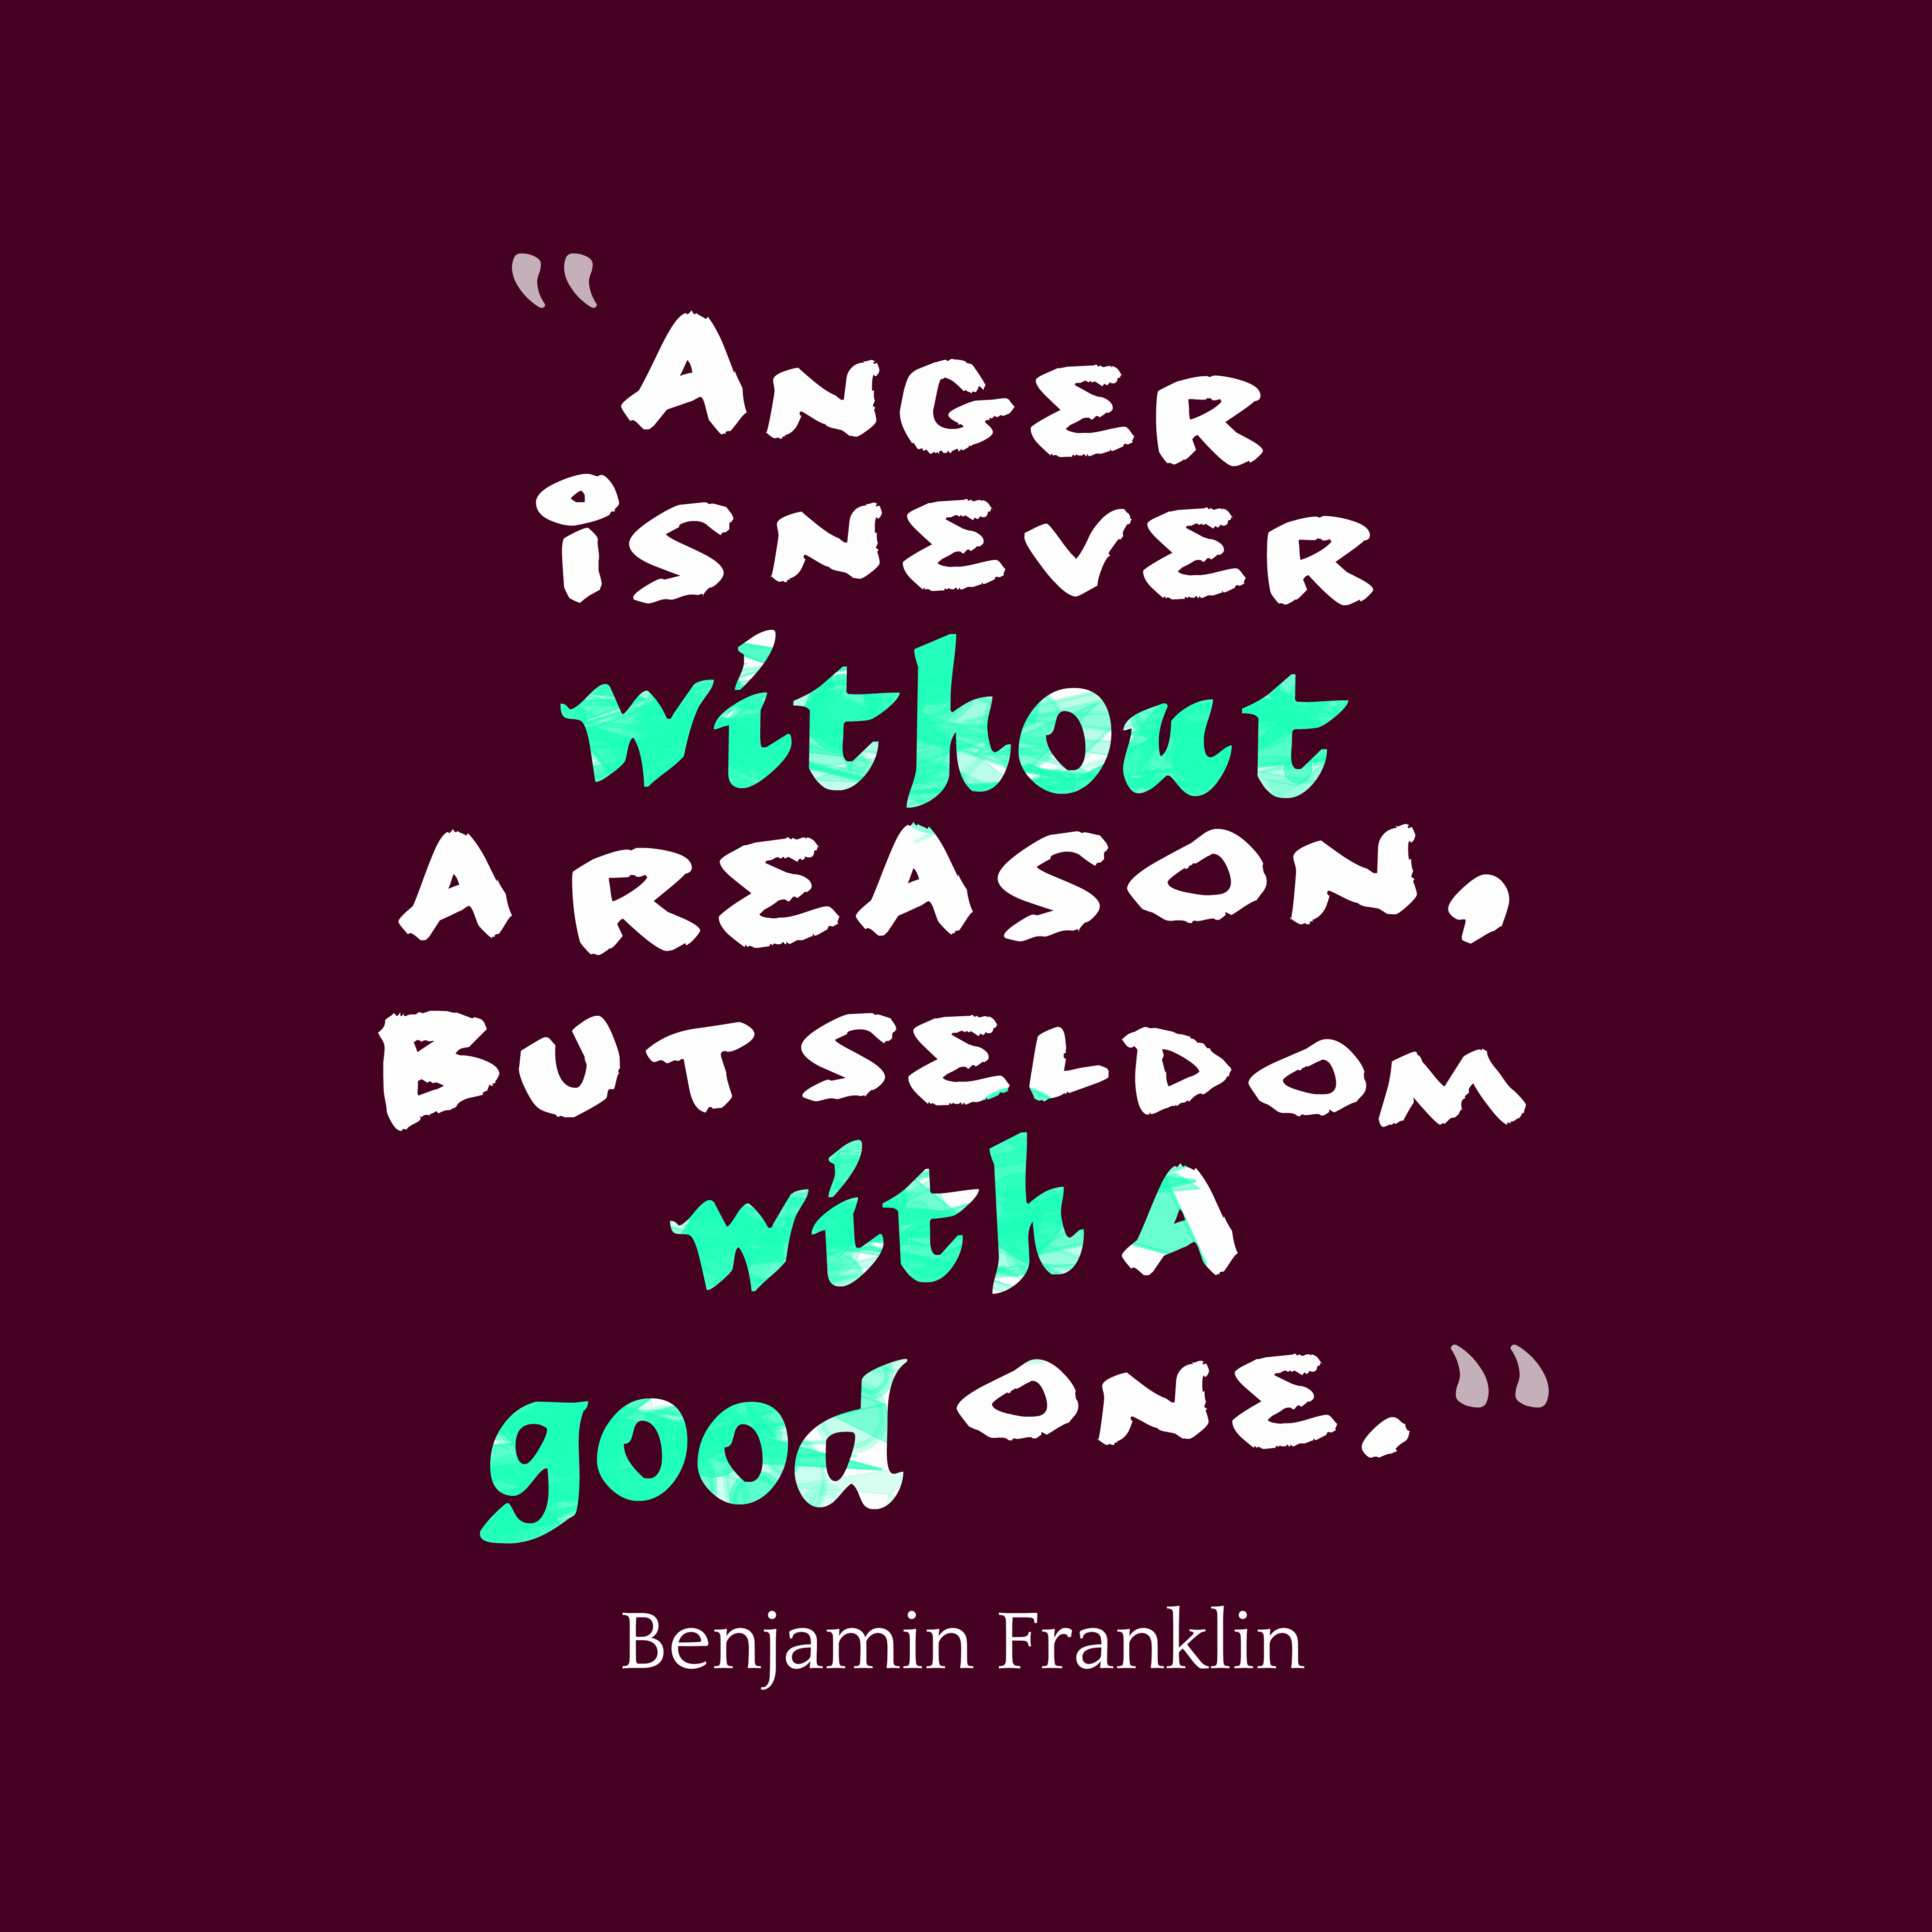 Quotes And Pics Of People With Anger: Get High Resolution Using Text From Benjamin Franklin